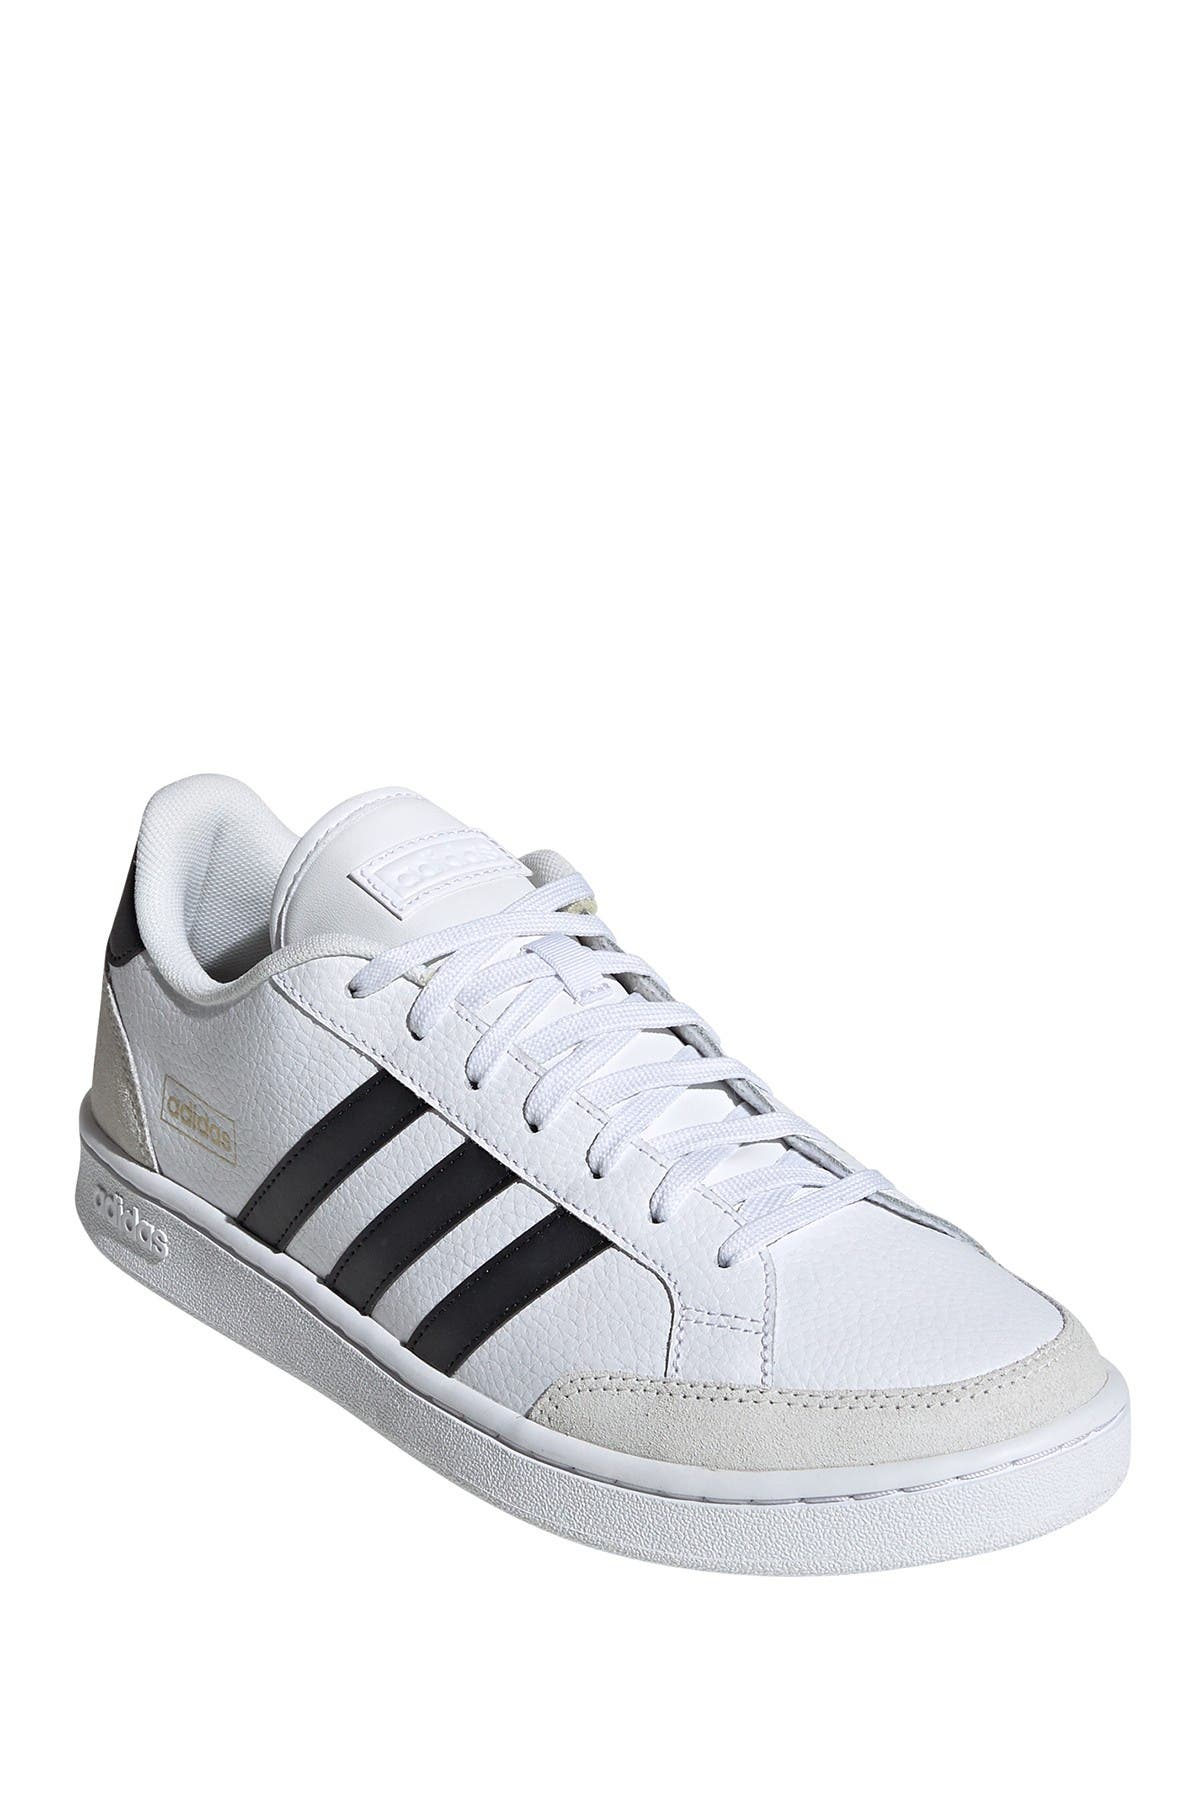 Image of adidas Grand Court SE Leather Sneaker